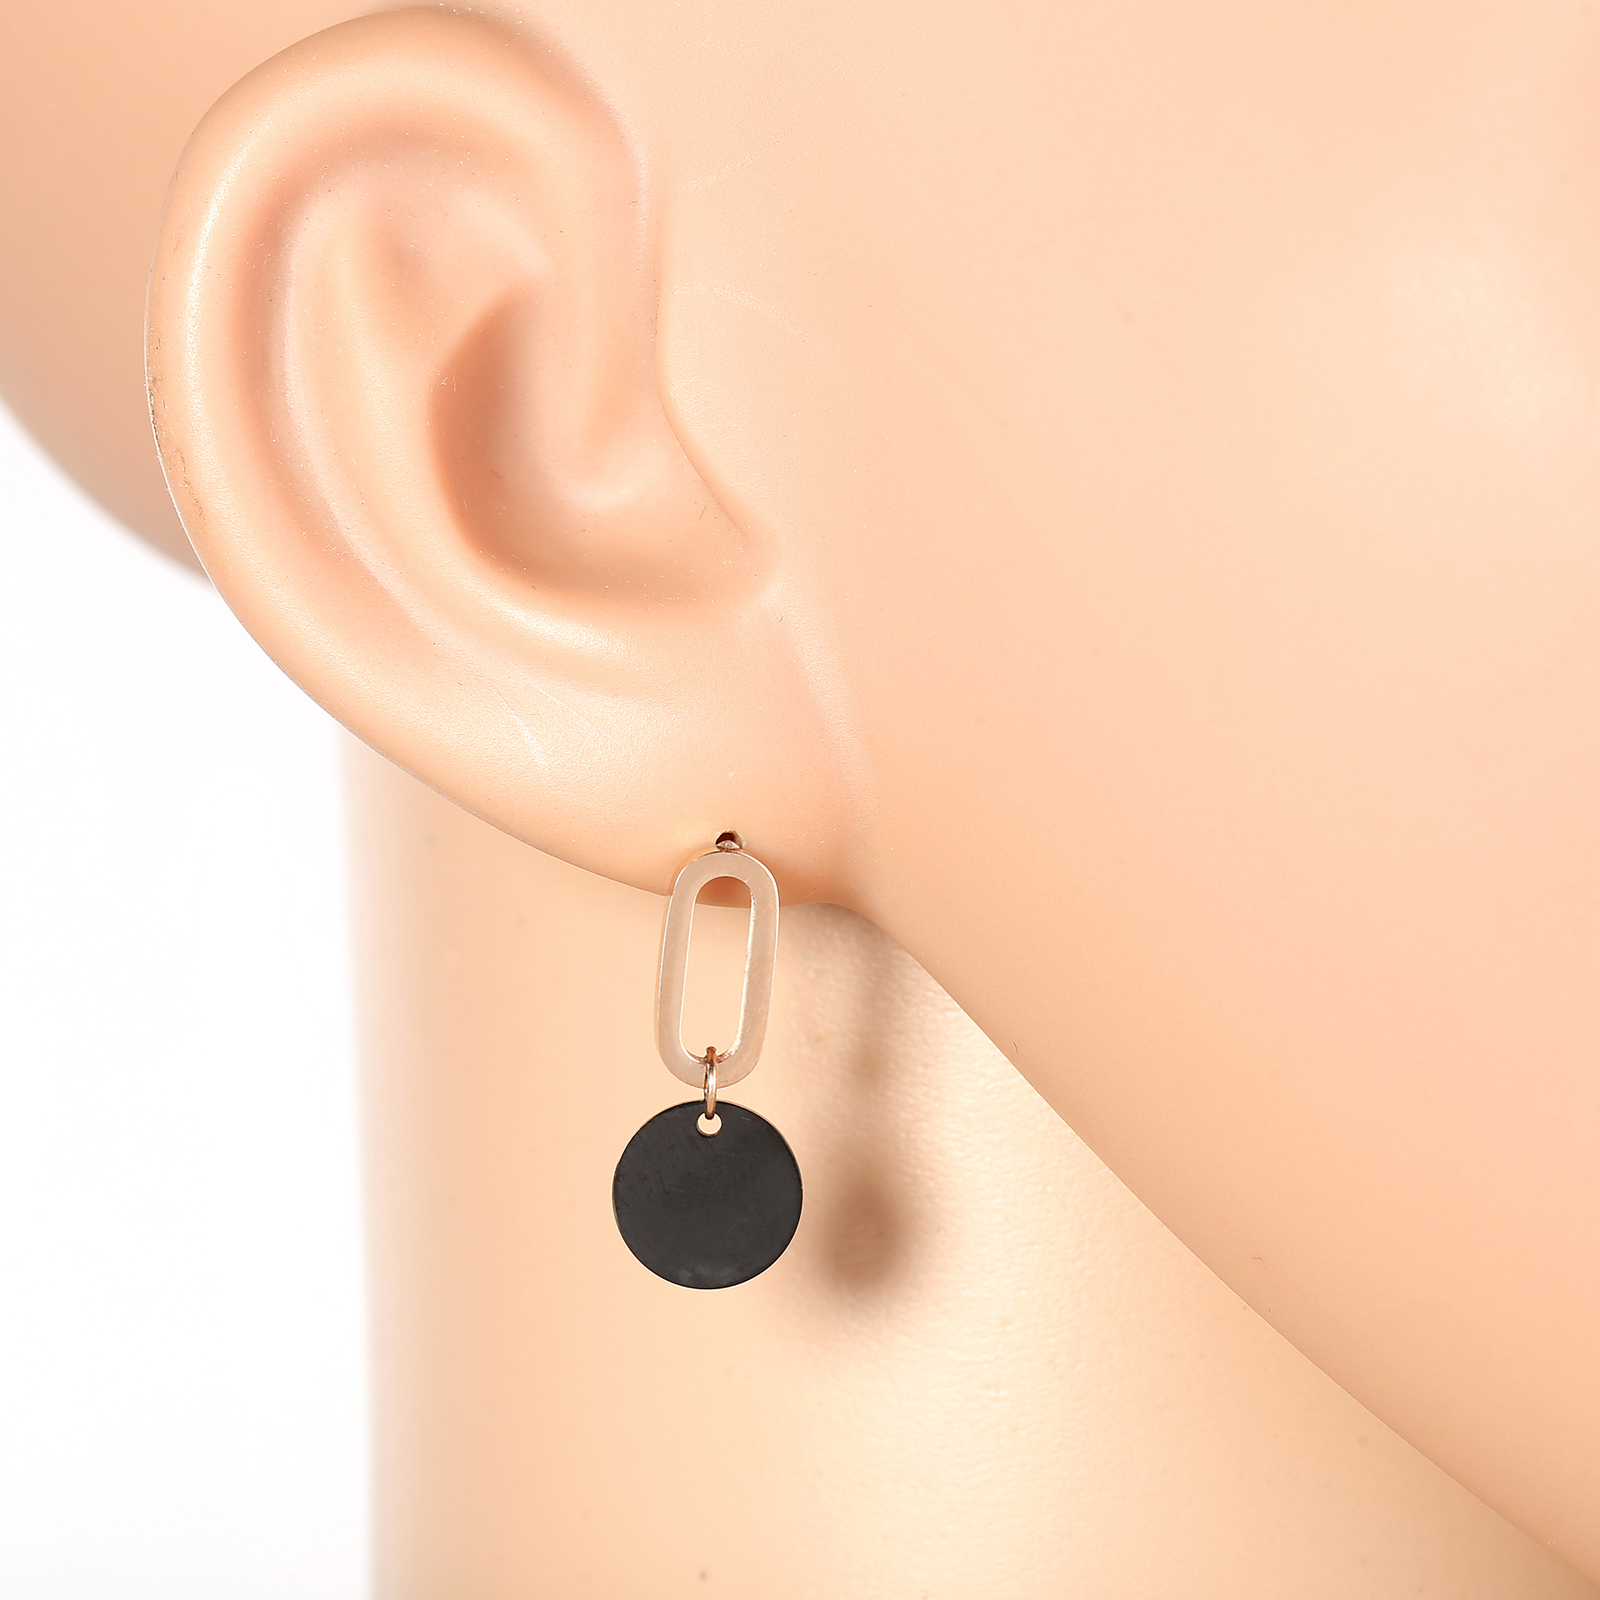 Primary image for Stylish Rose Gold Tone Designer Drop Earrings with Jet Black Gun-Metal Circle